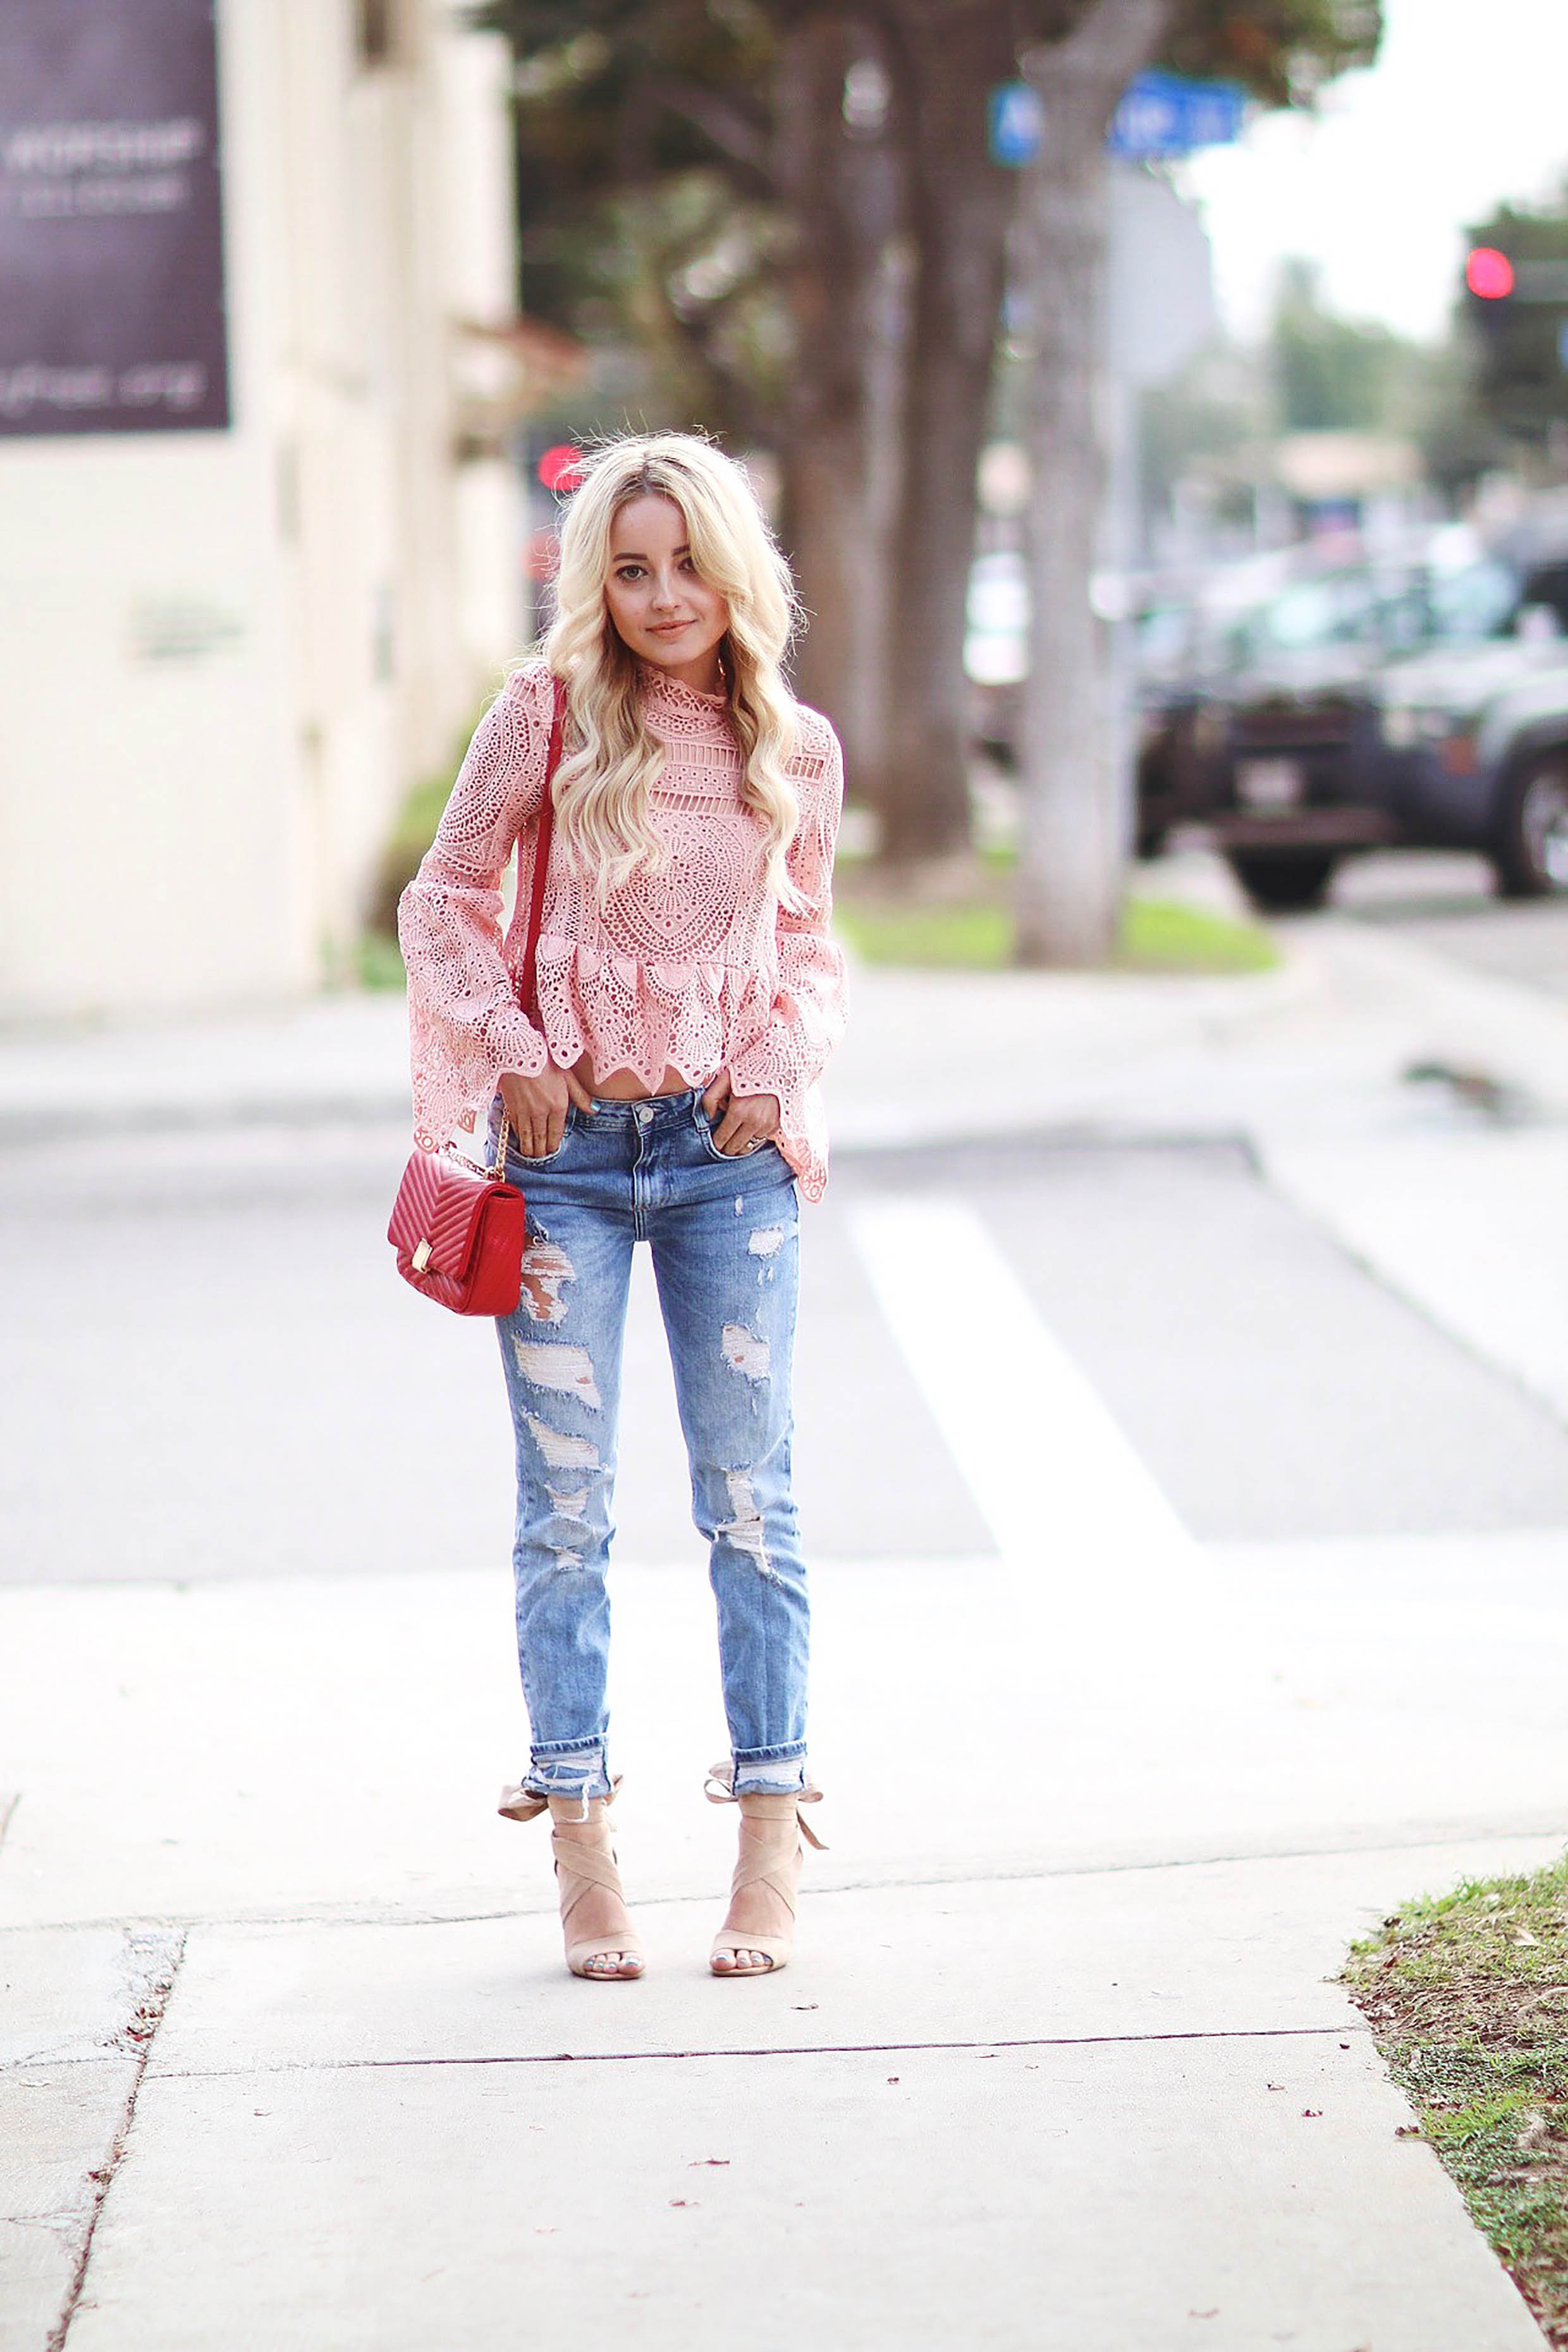 HOW TO FIND THE PERFECT PAIR OF BOYFRIEND JEANS